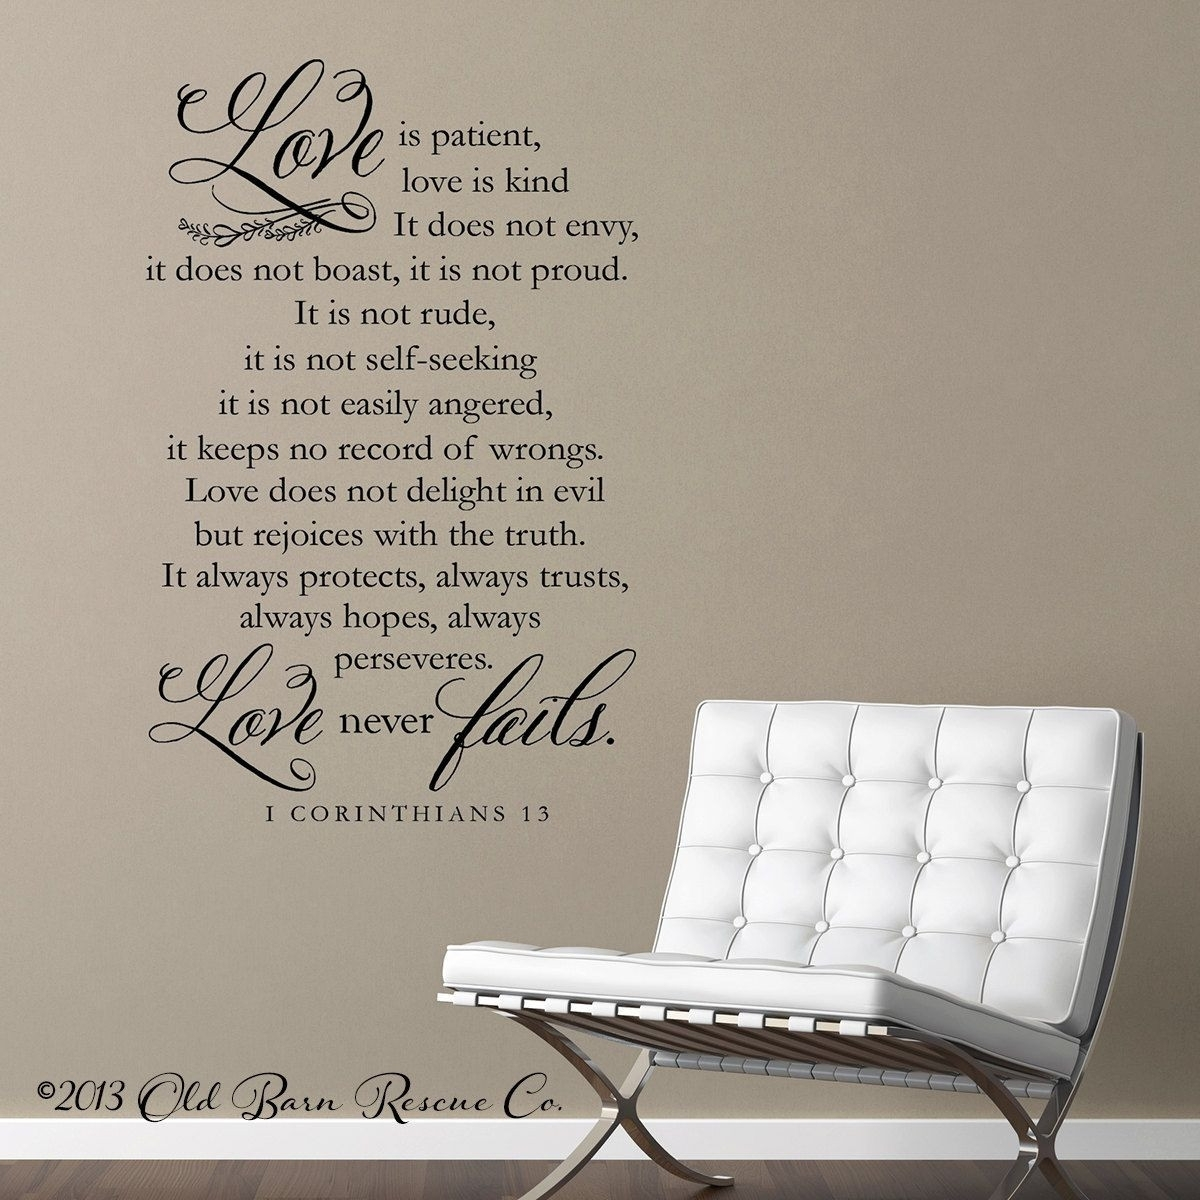 Appealing Wall Art Decor Ideas Sofa Corinthians Chair White Pict Of Regarding Most Recent Love Is Patient Wall Art (View 1 of 20)